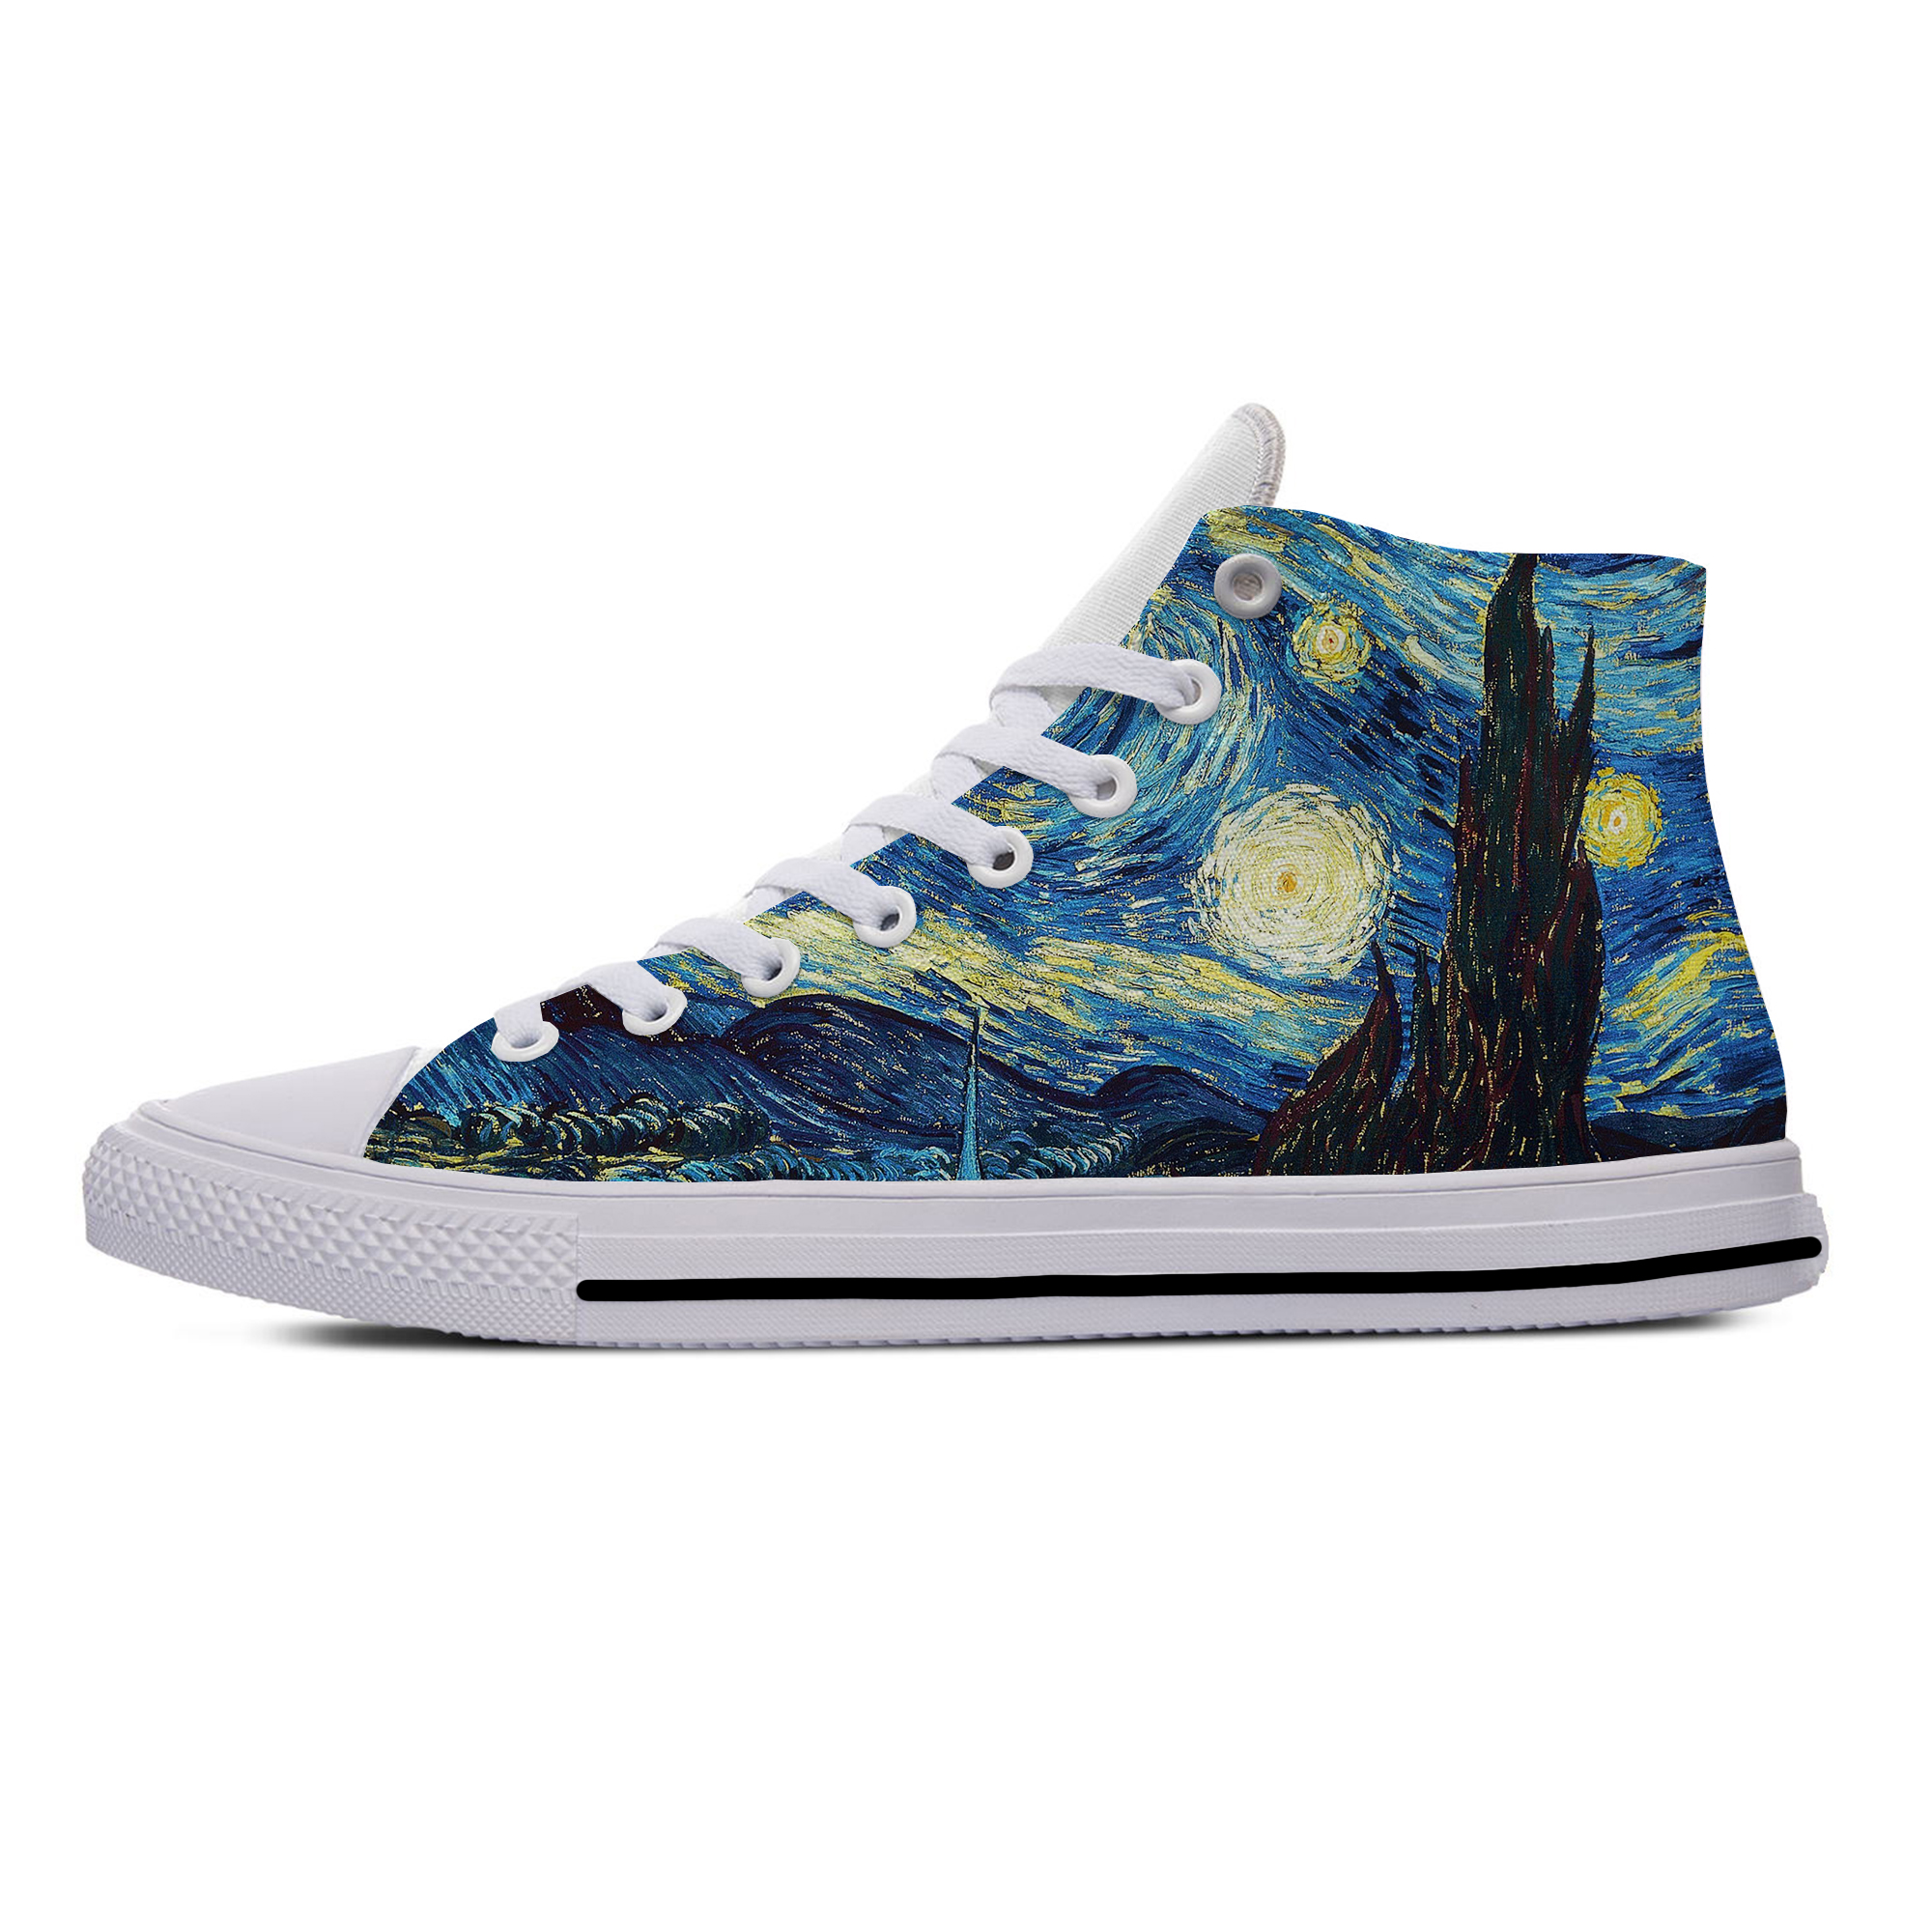 Vincent Van Gogh Oil Painting Aesthetic Funny Casual Canvas Shoes High Top Lightweight Breathable 3D Printed Men Women Sneakers